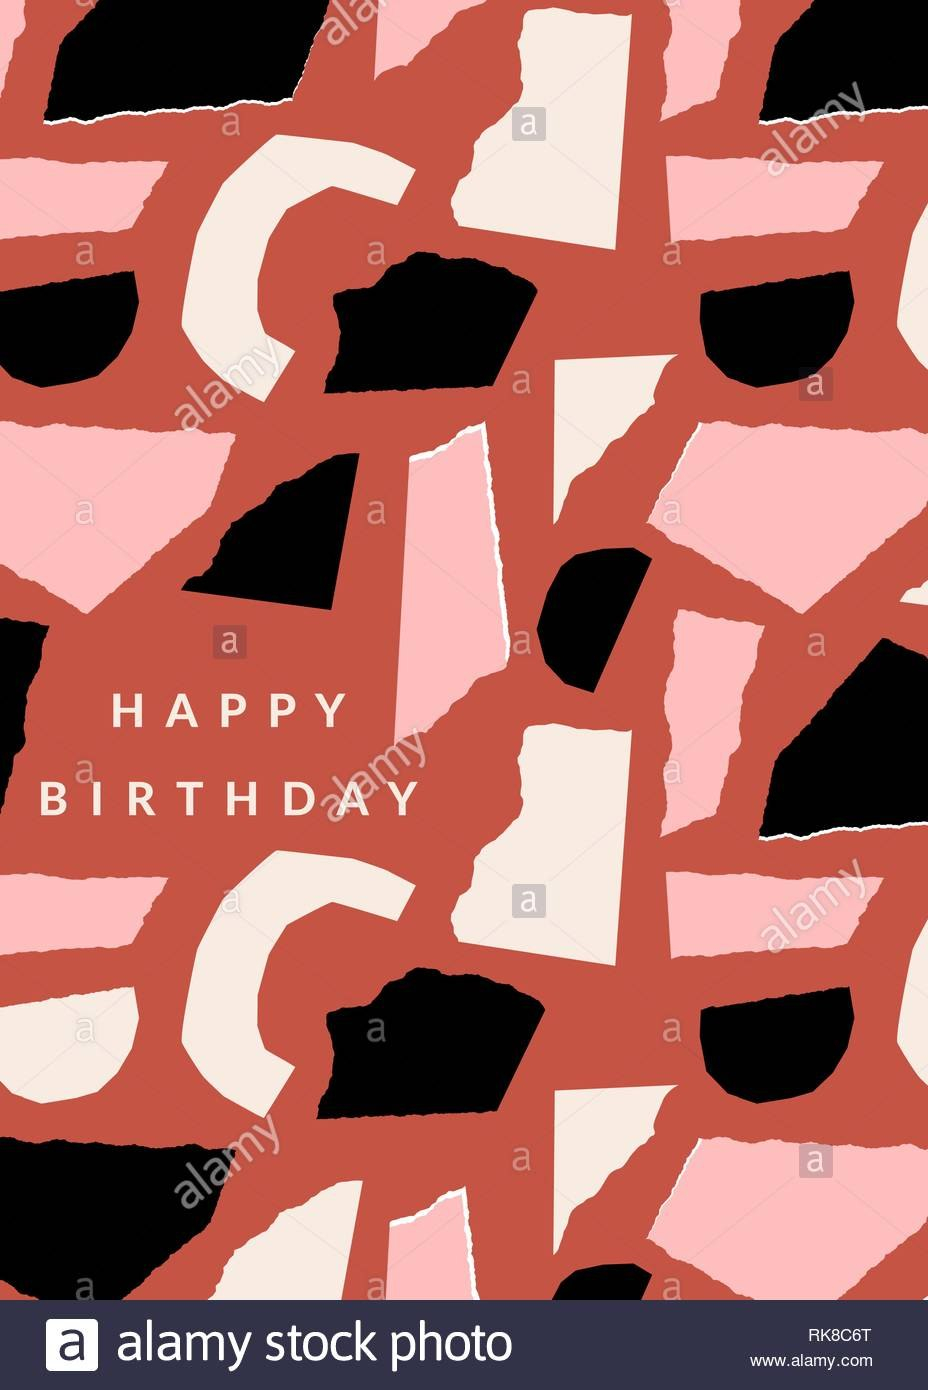 Greeting Card Template With Paper Cut Shapes In Black Pastel Pink Pertaining To Birthday Card Collage Template